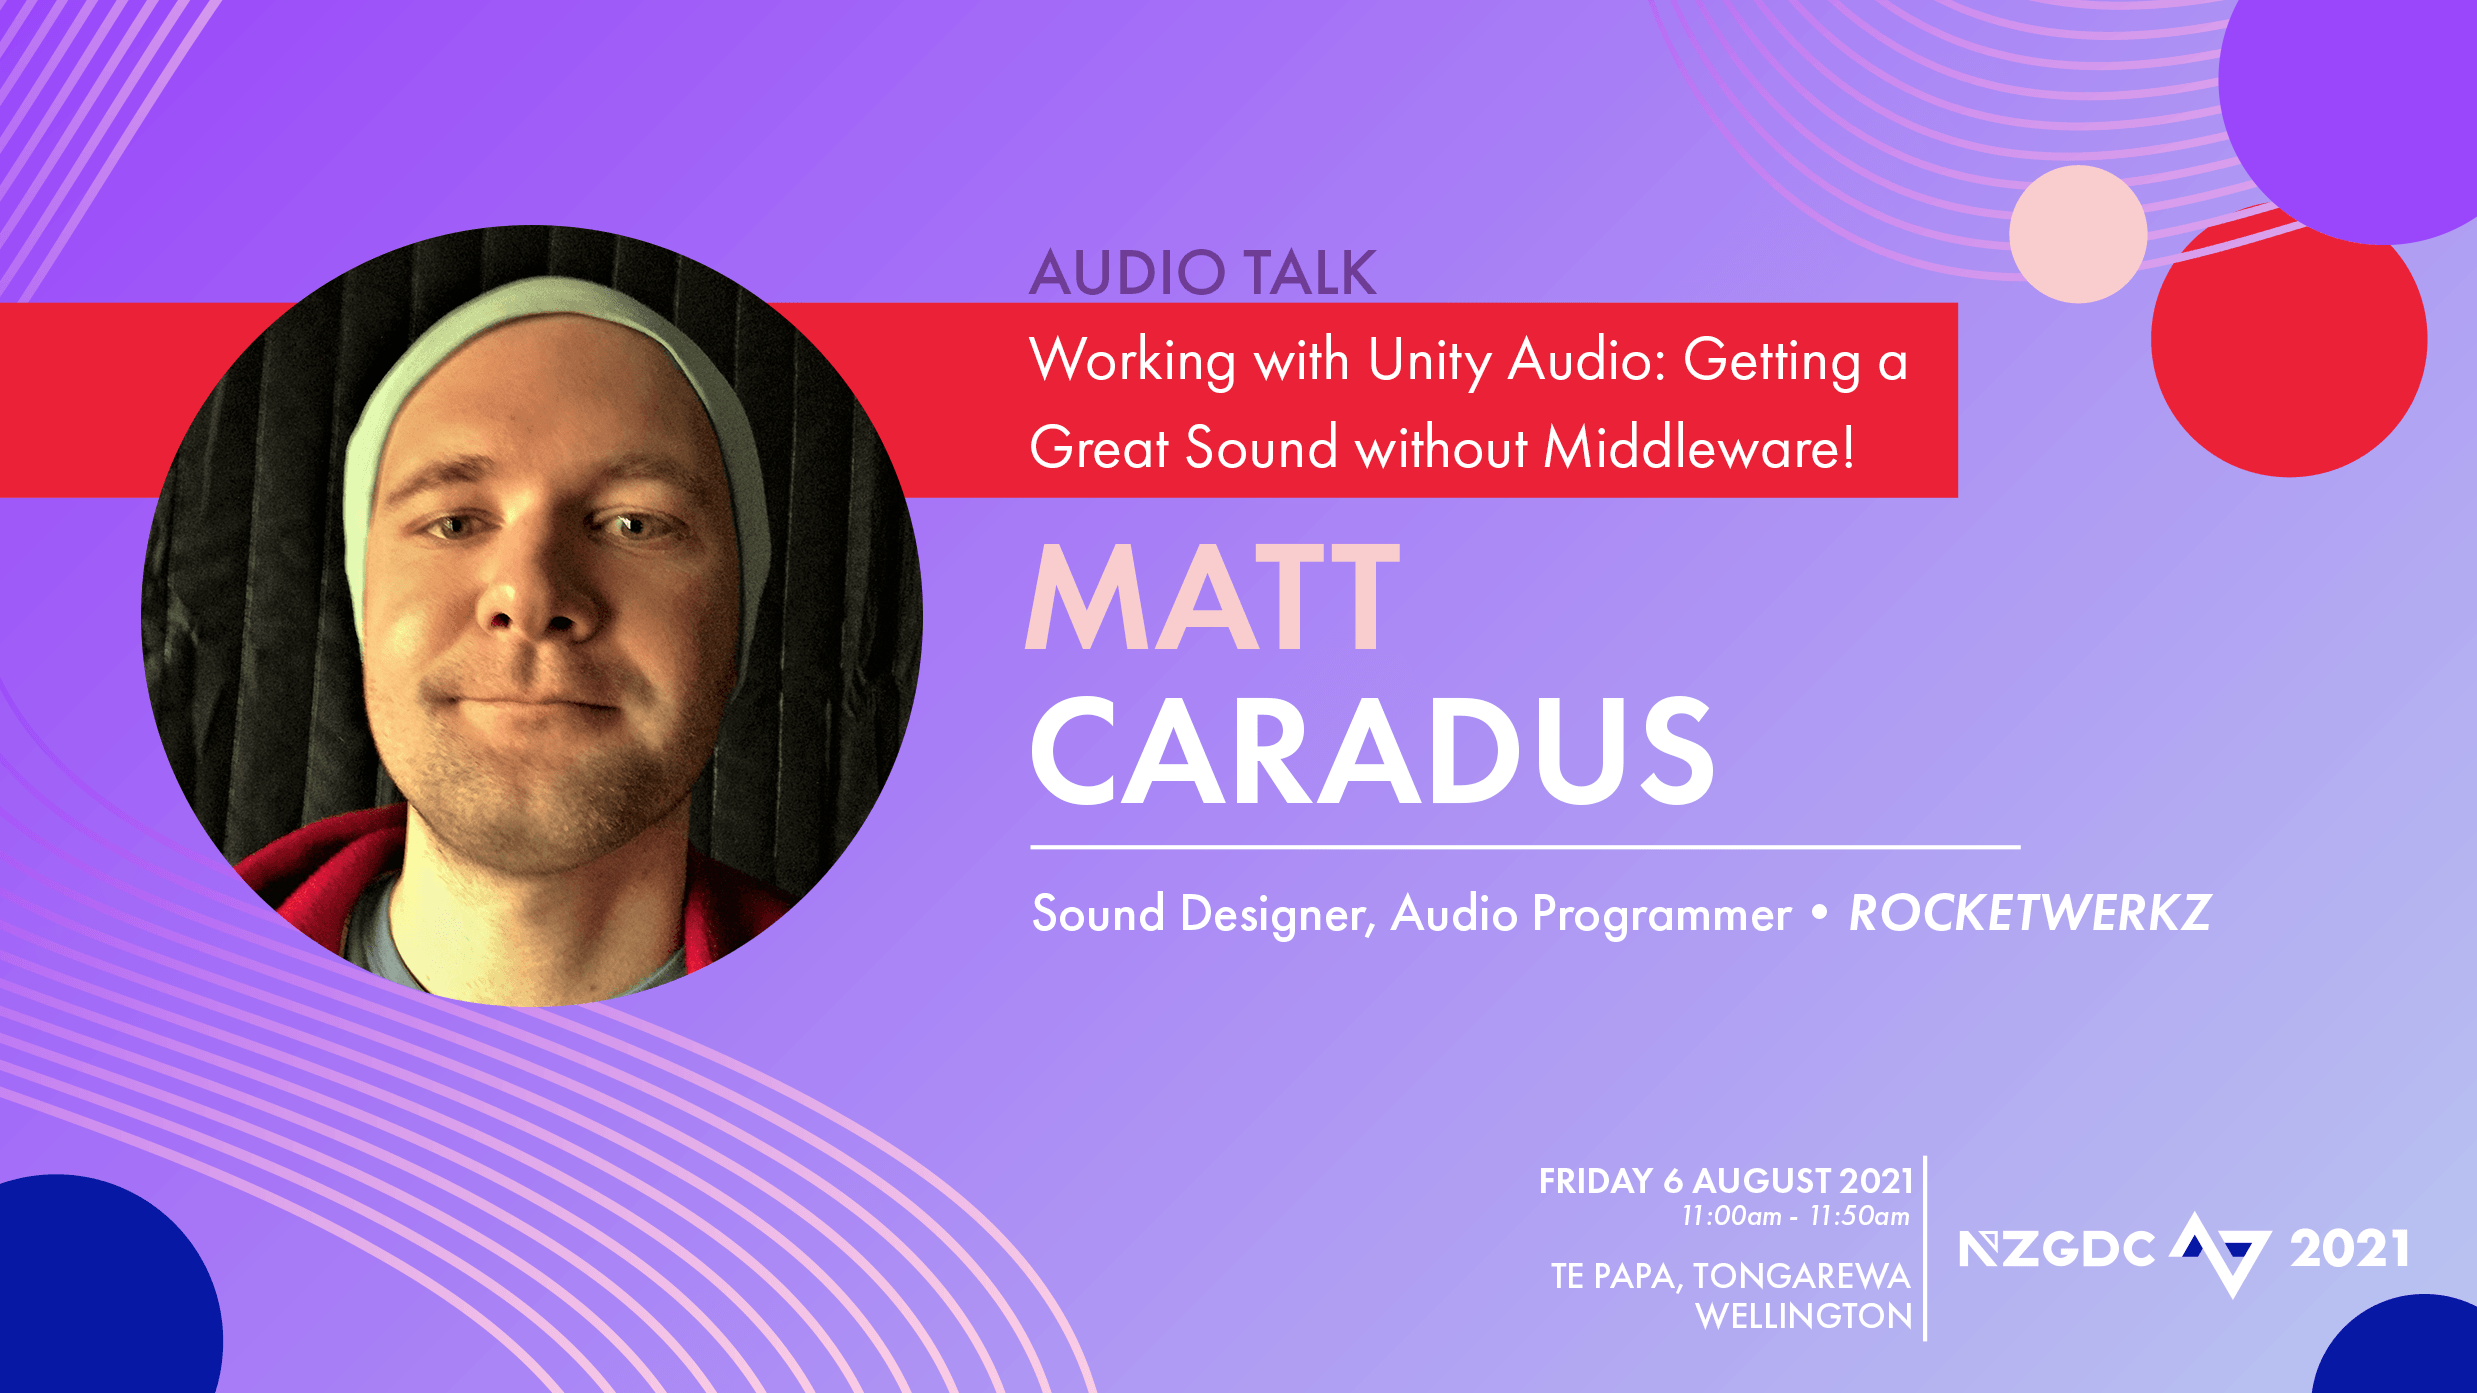 Working with Unity Audio: Getting a great sound without middleware!